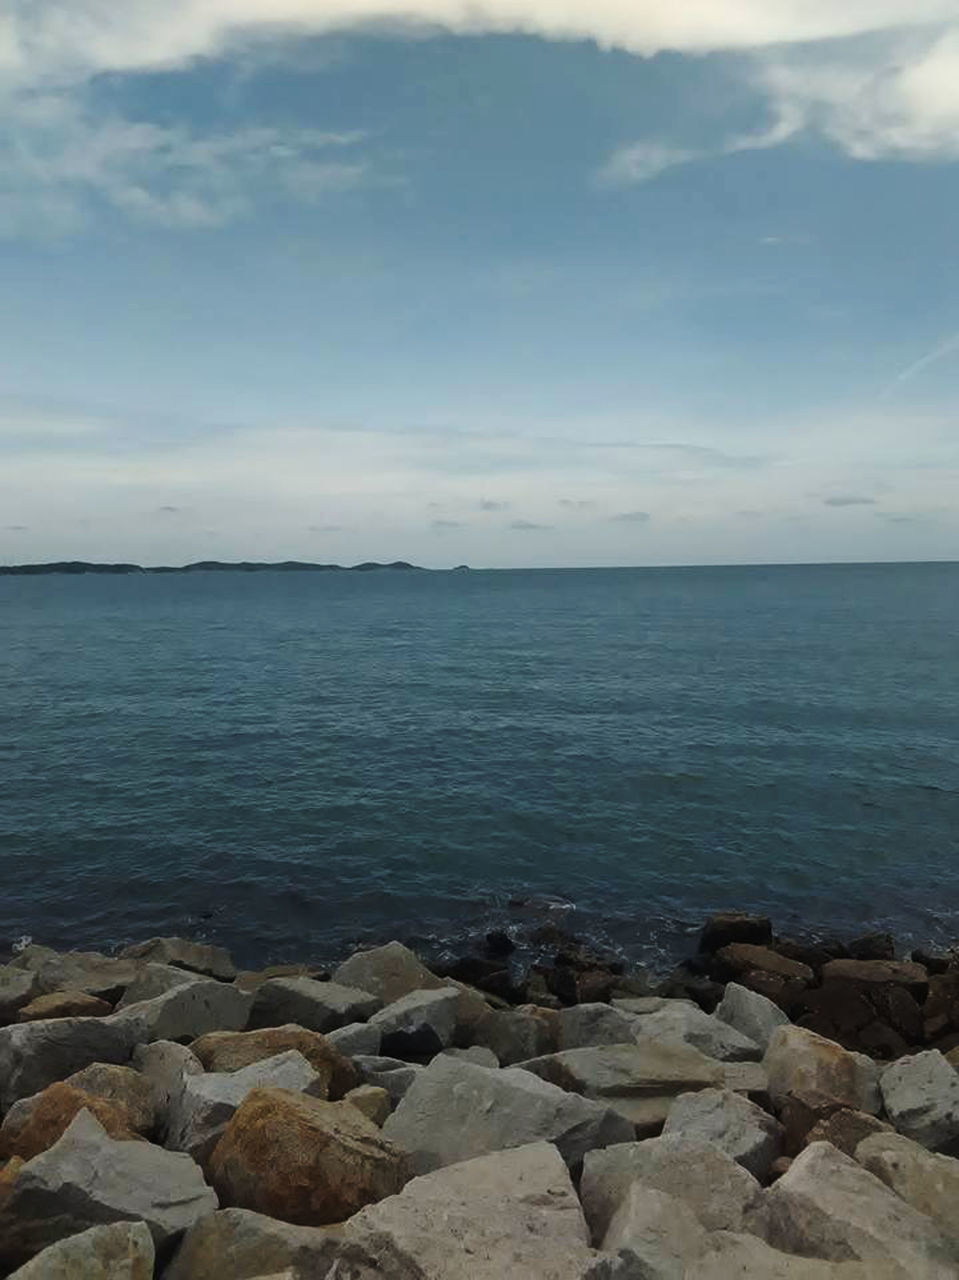 sea, water, nature, tranquil scene, scenics, tranquility, beauty in nature, horizon over water, outdoors, sky, day, no people, rock - object, beach, pebble beach